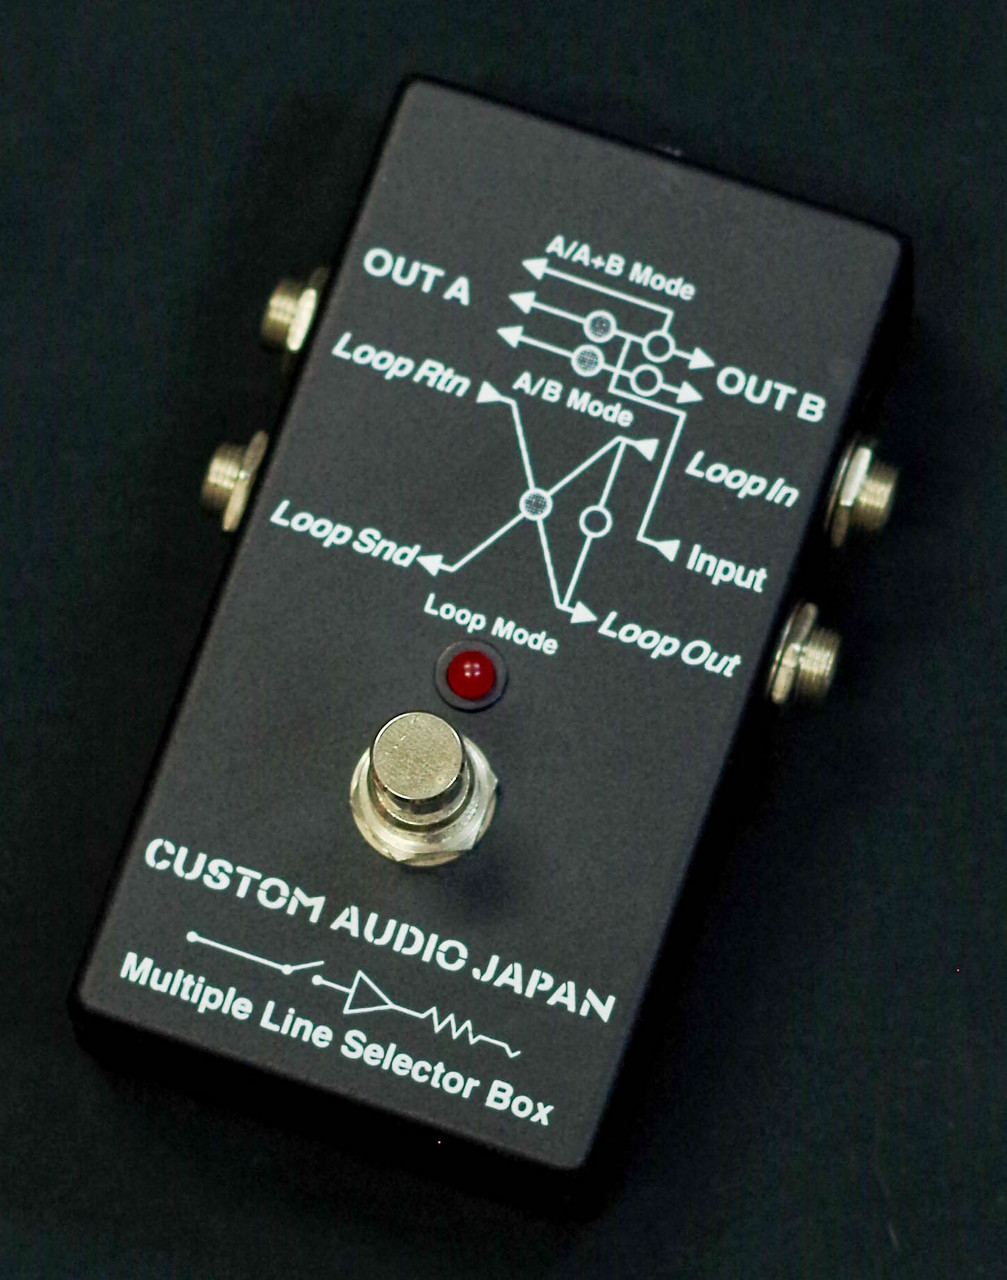 Custom Audio Japan(CAJ) Multiple Line Selector Box